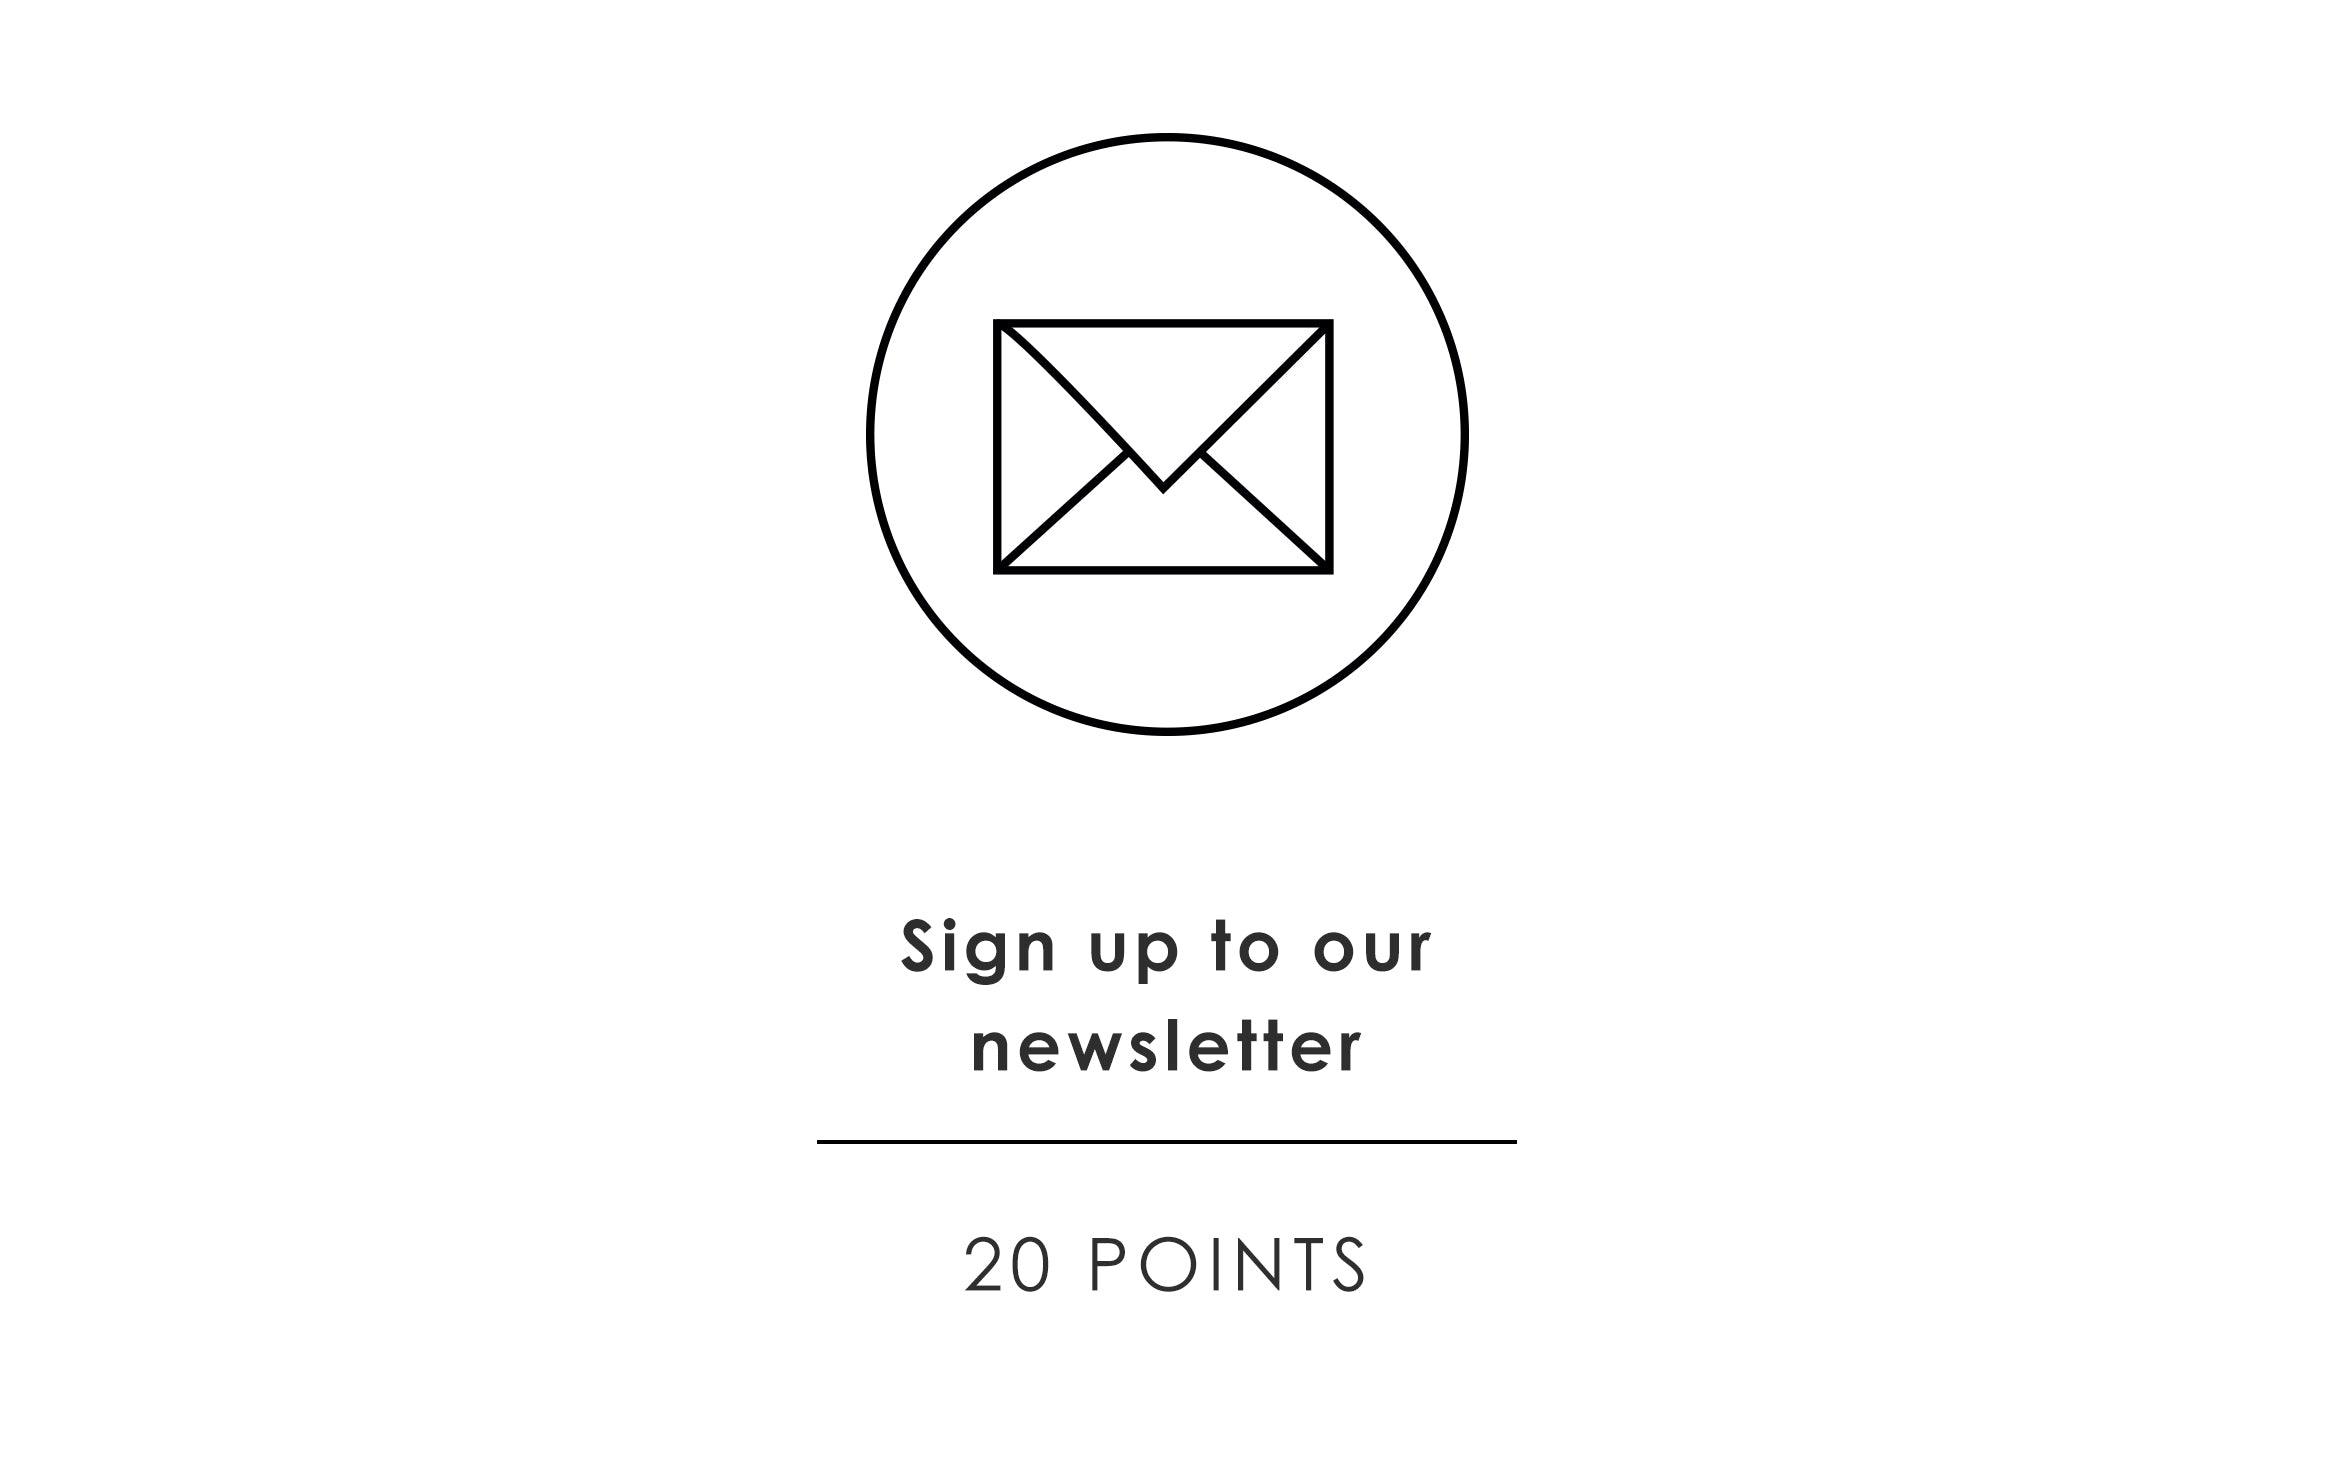 Sign up to our newsletter - 20 points